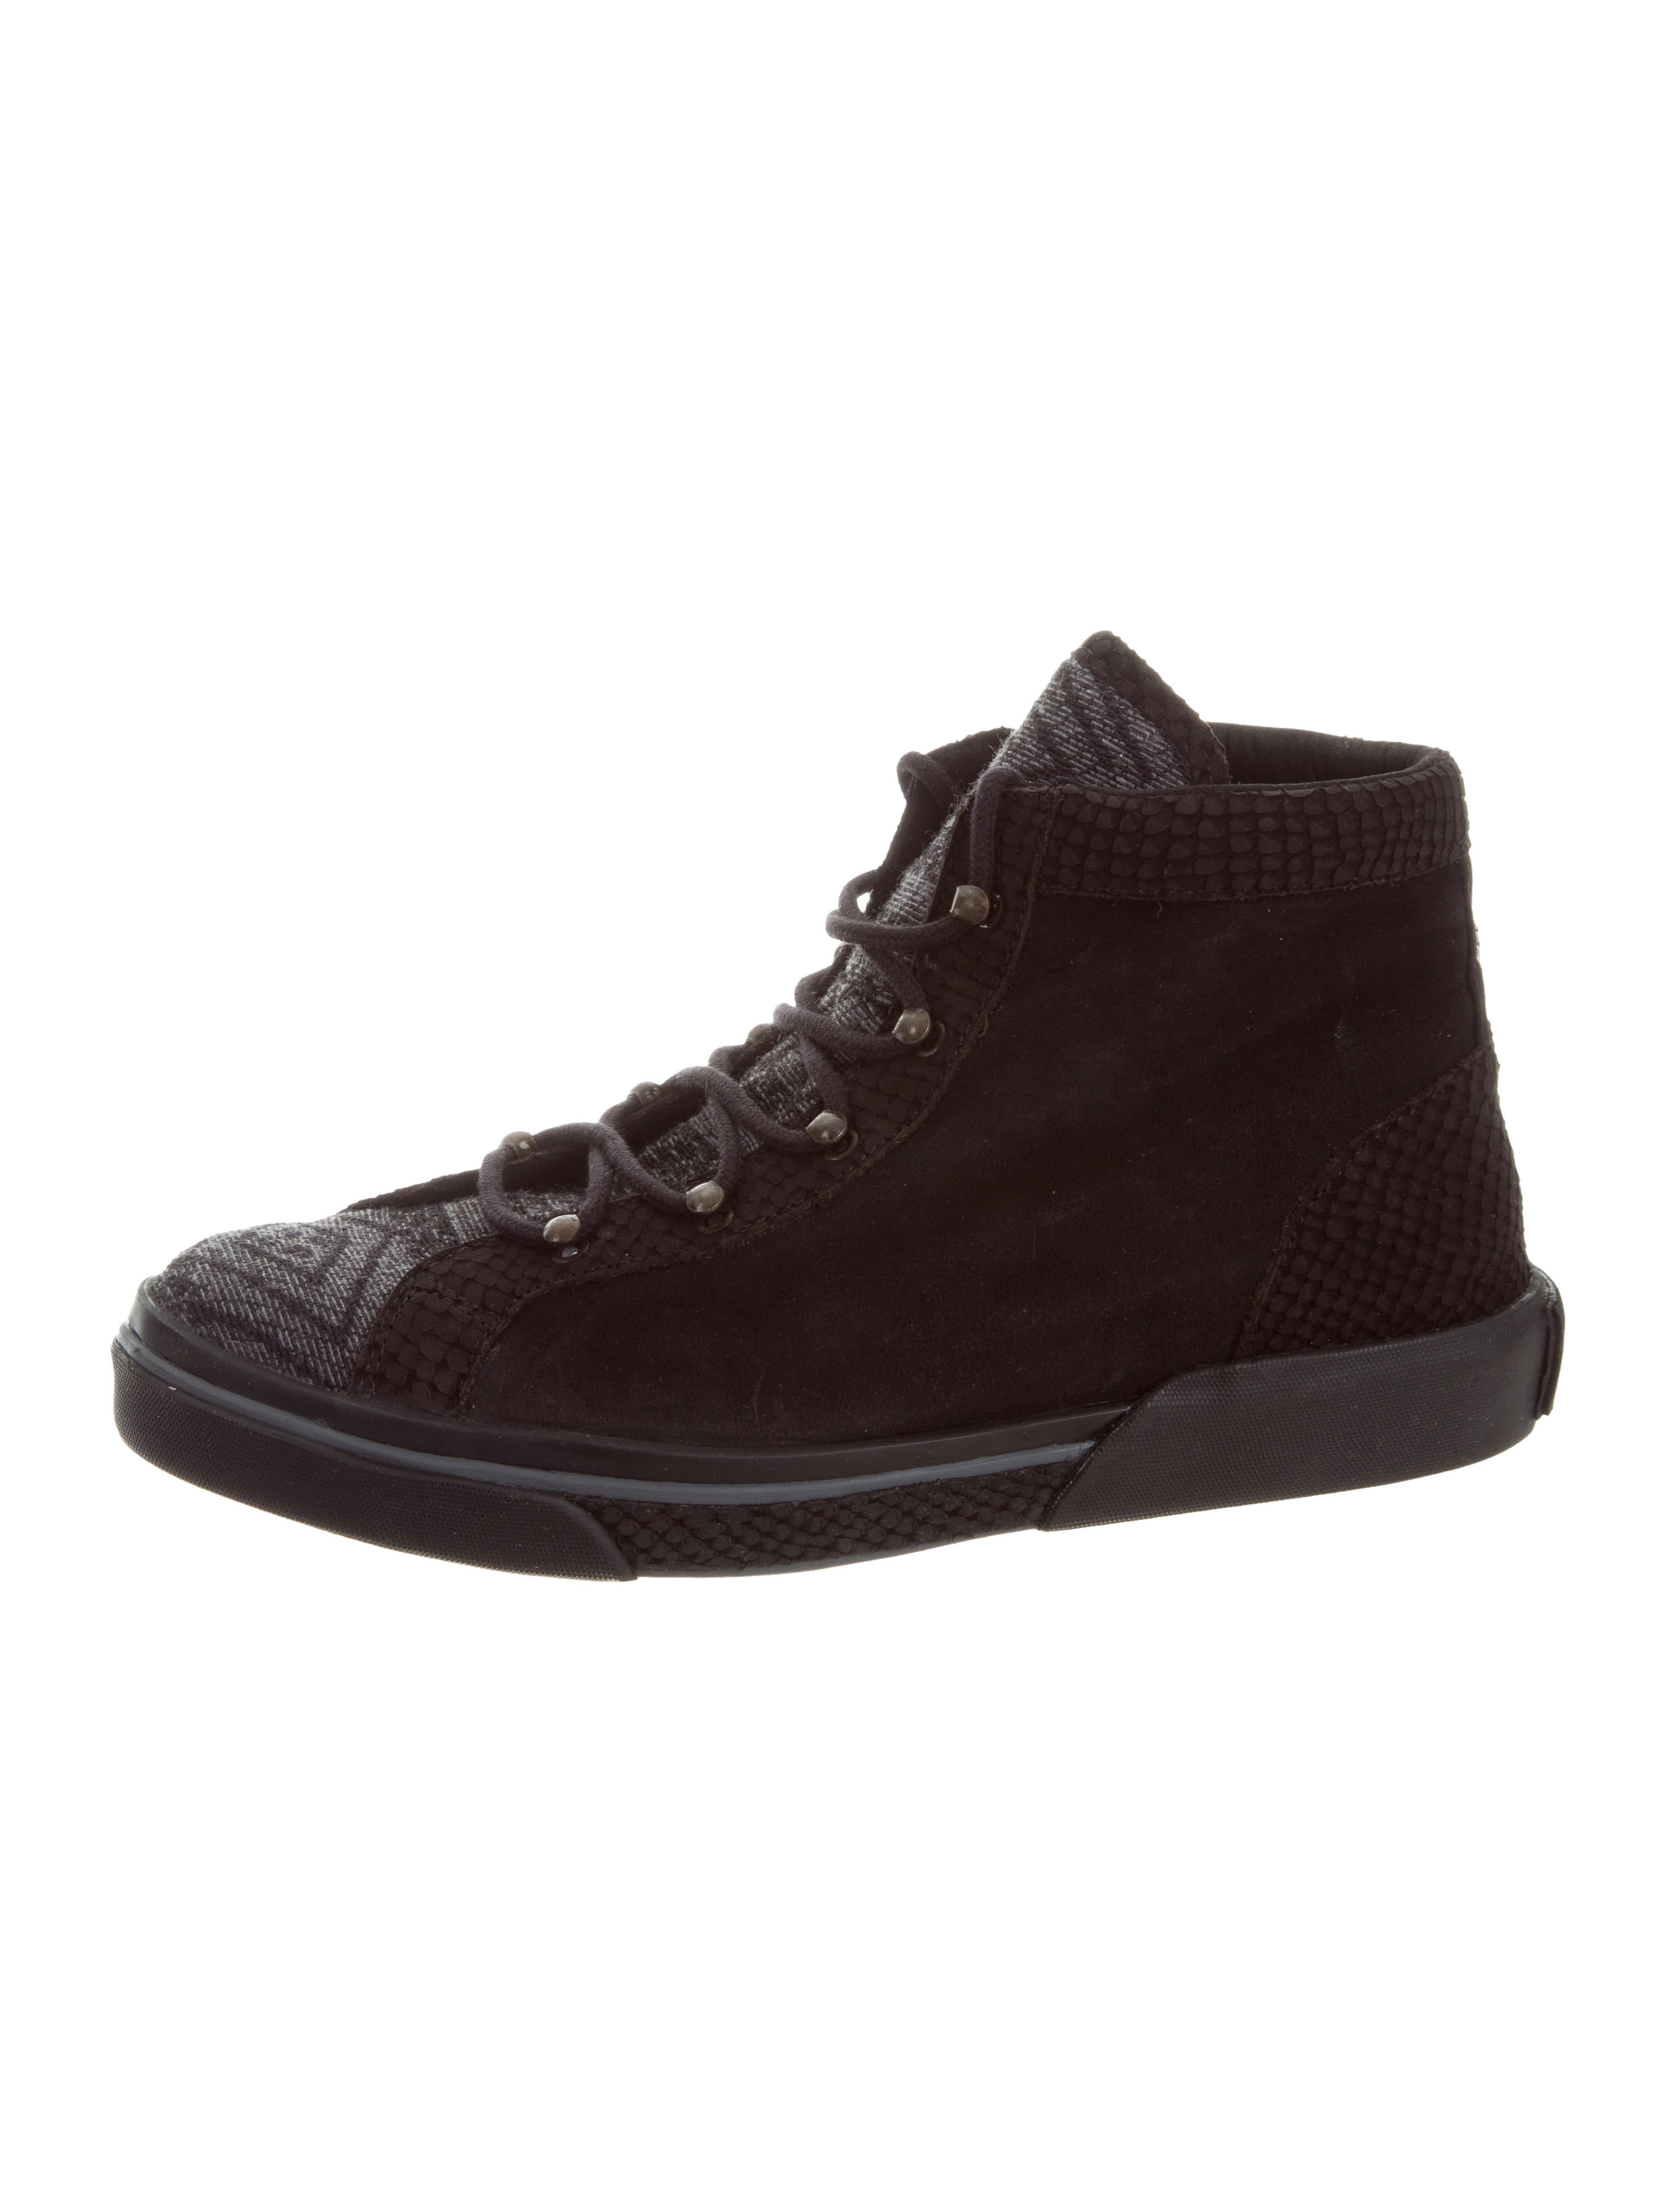 Cobra Society Leah Embossed Sneakers w/ Tags eastbay for sale free shipping 100% original tumblr cheap online jeEJEl